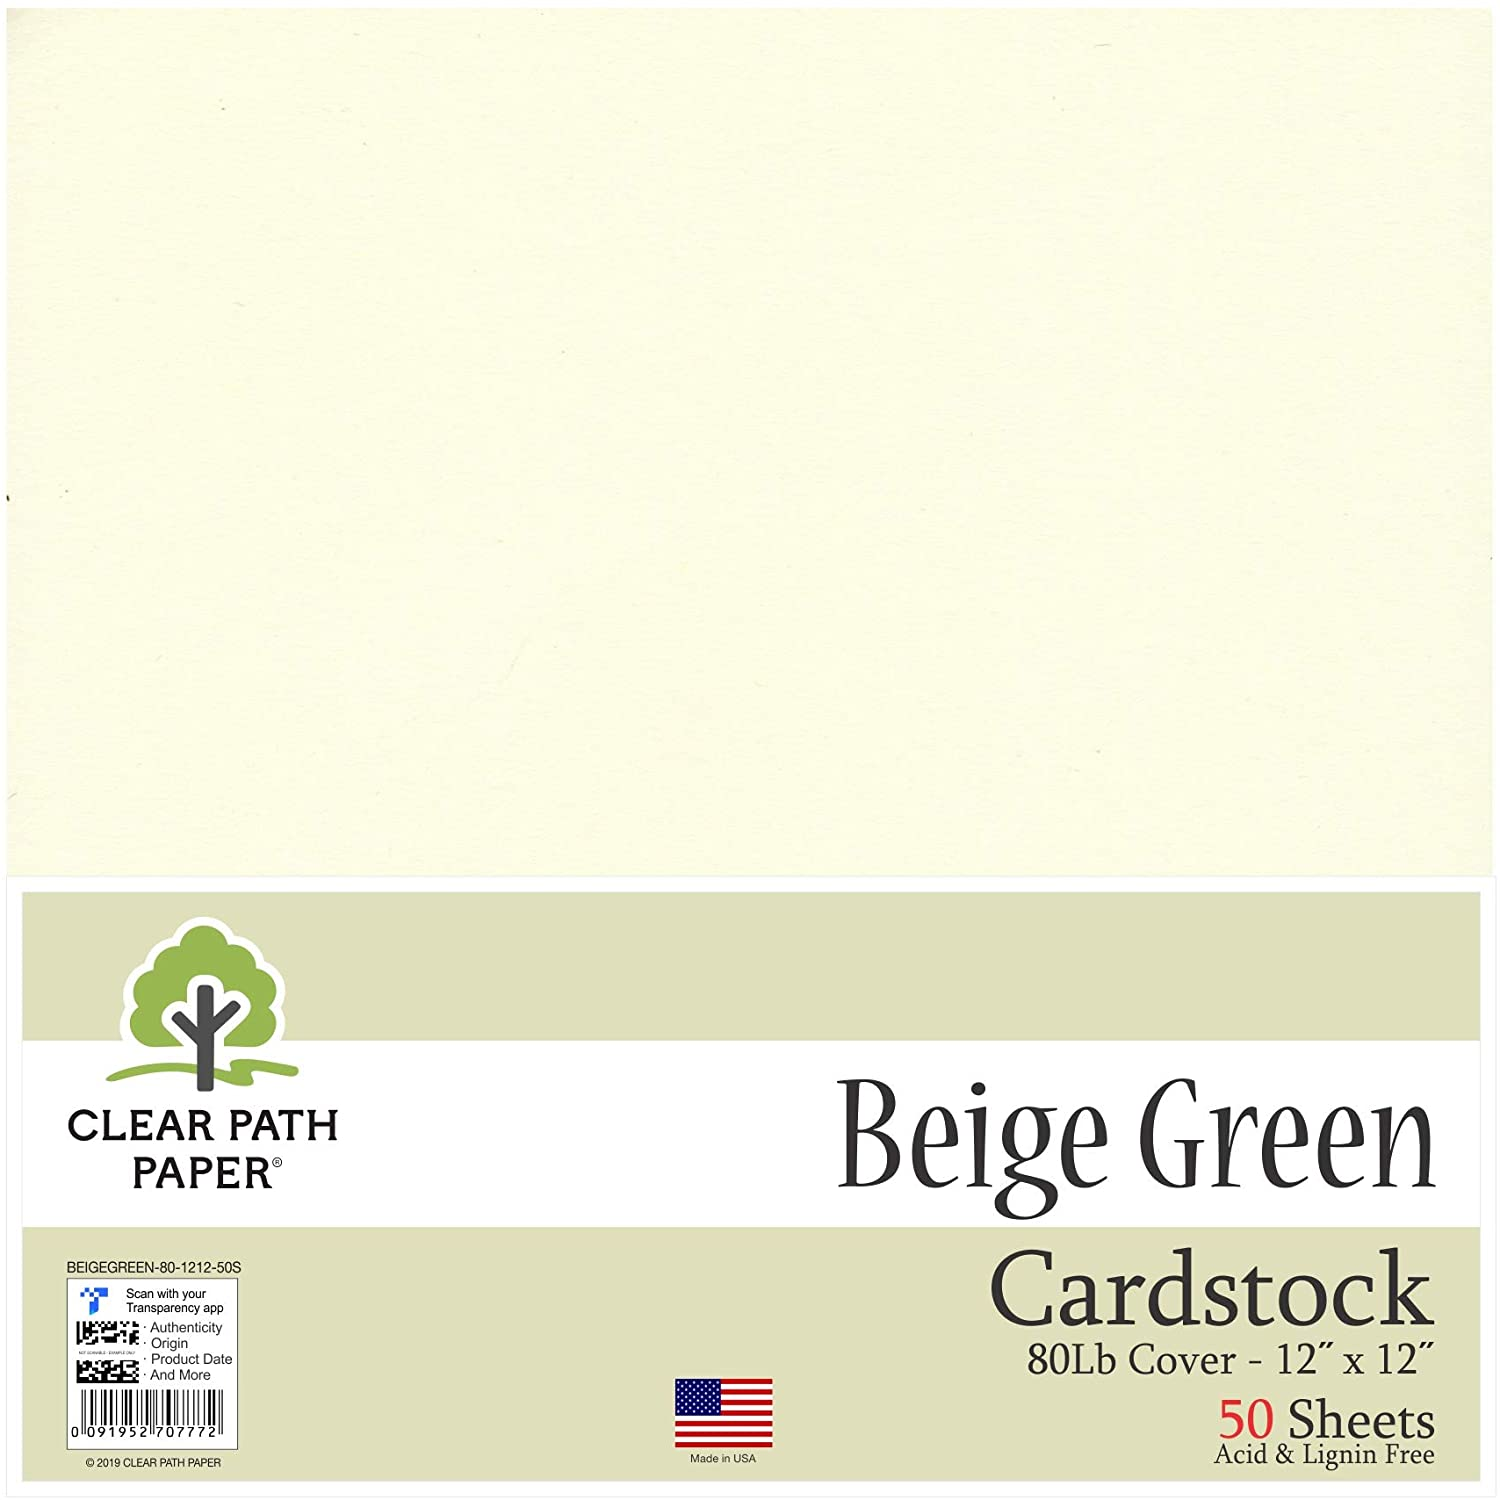 Beige Green Cardstock - 12 x 12 inch - 80Lb Cover - 50 Sheets - Clear Path Paper